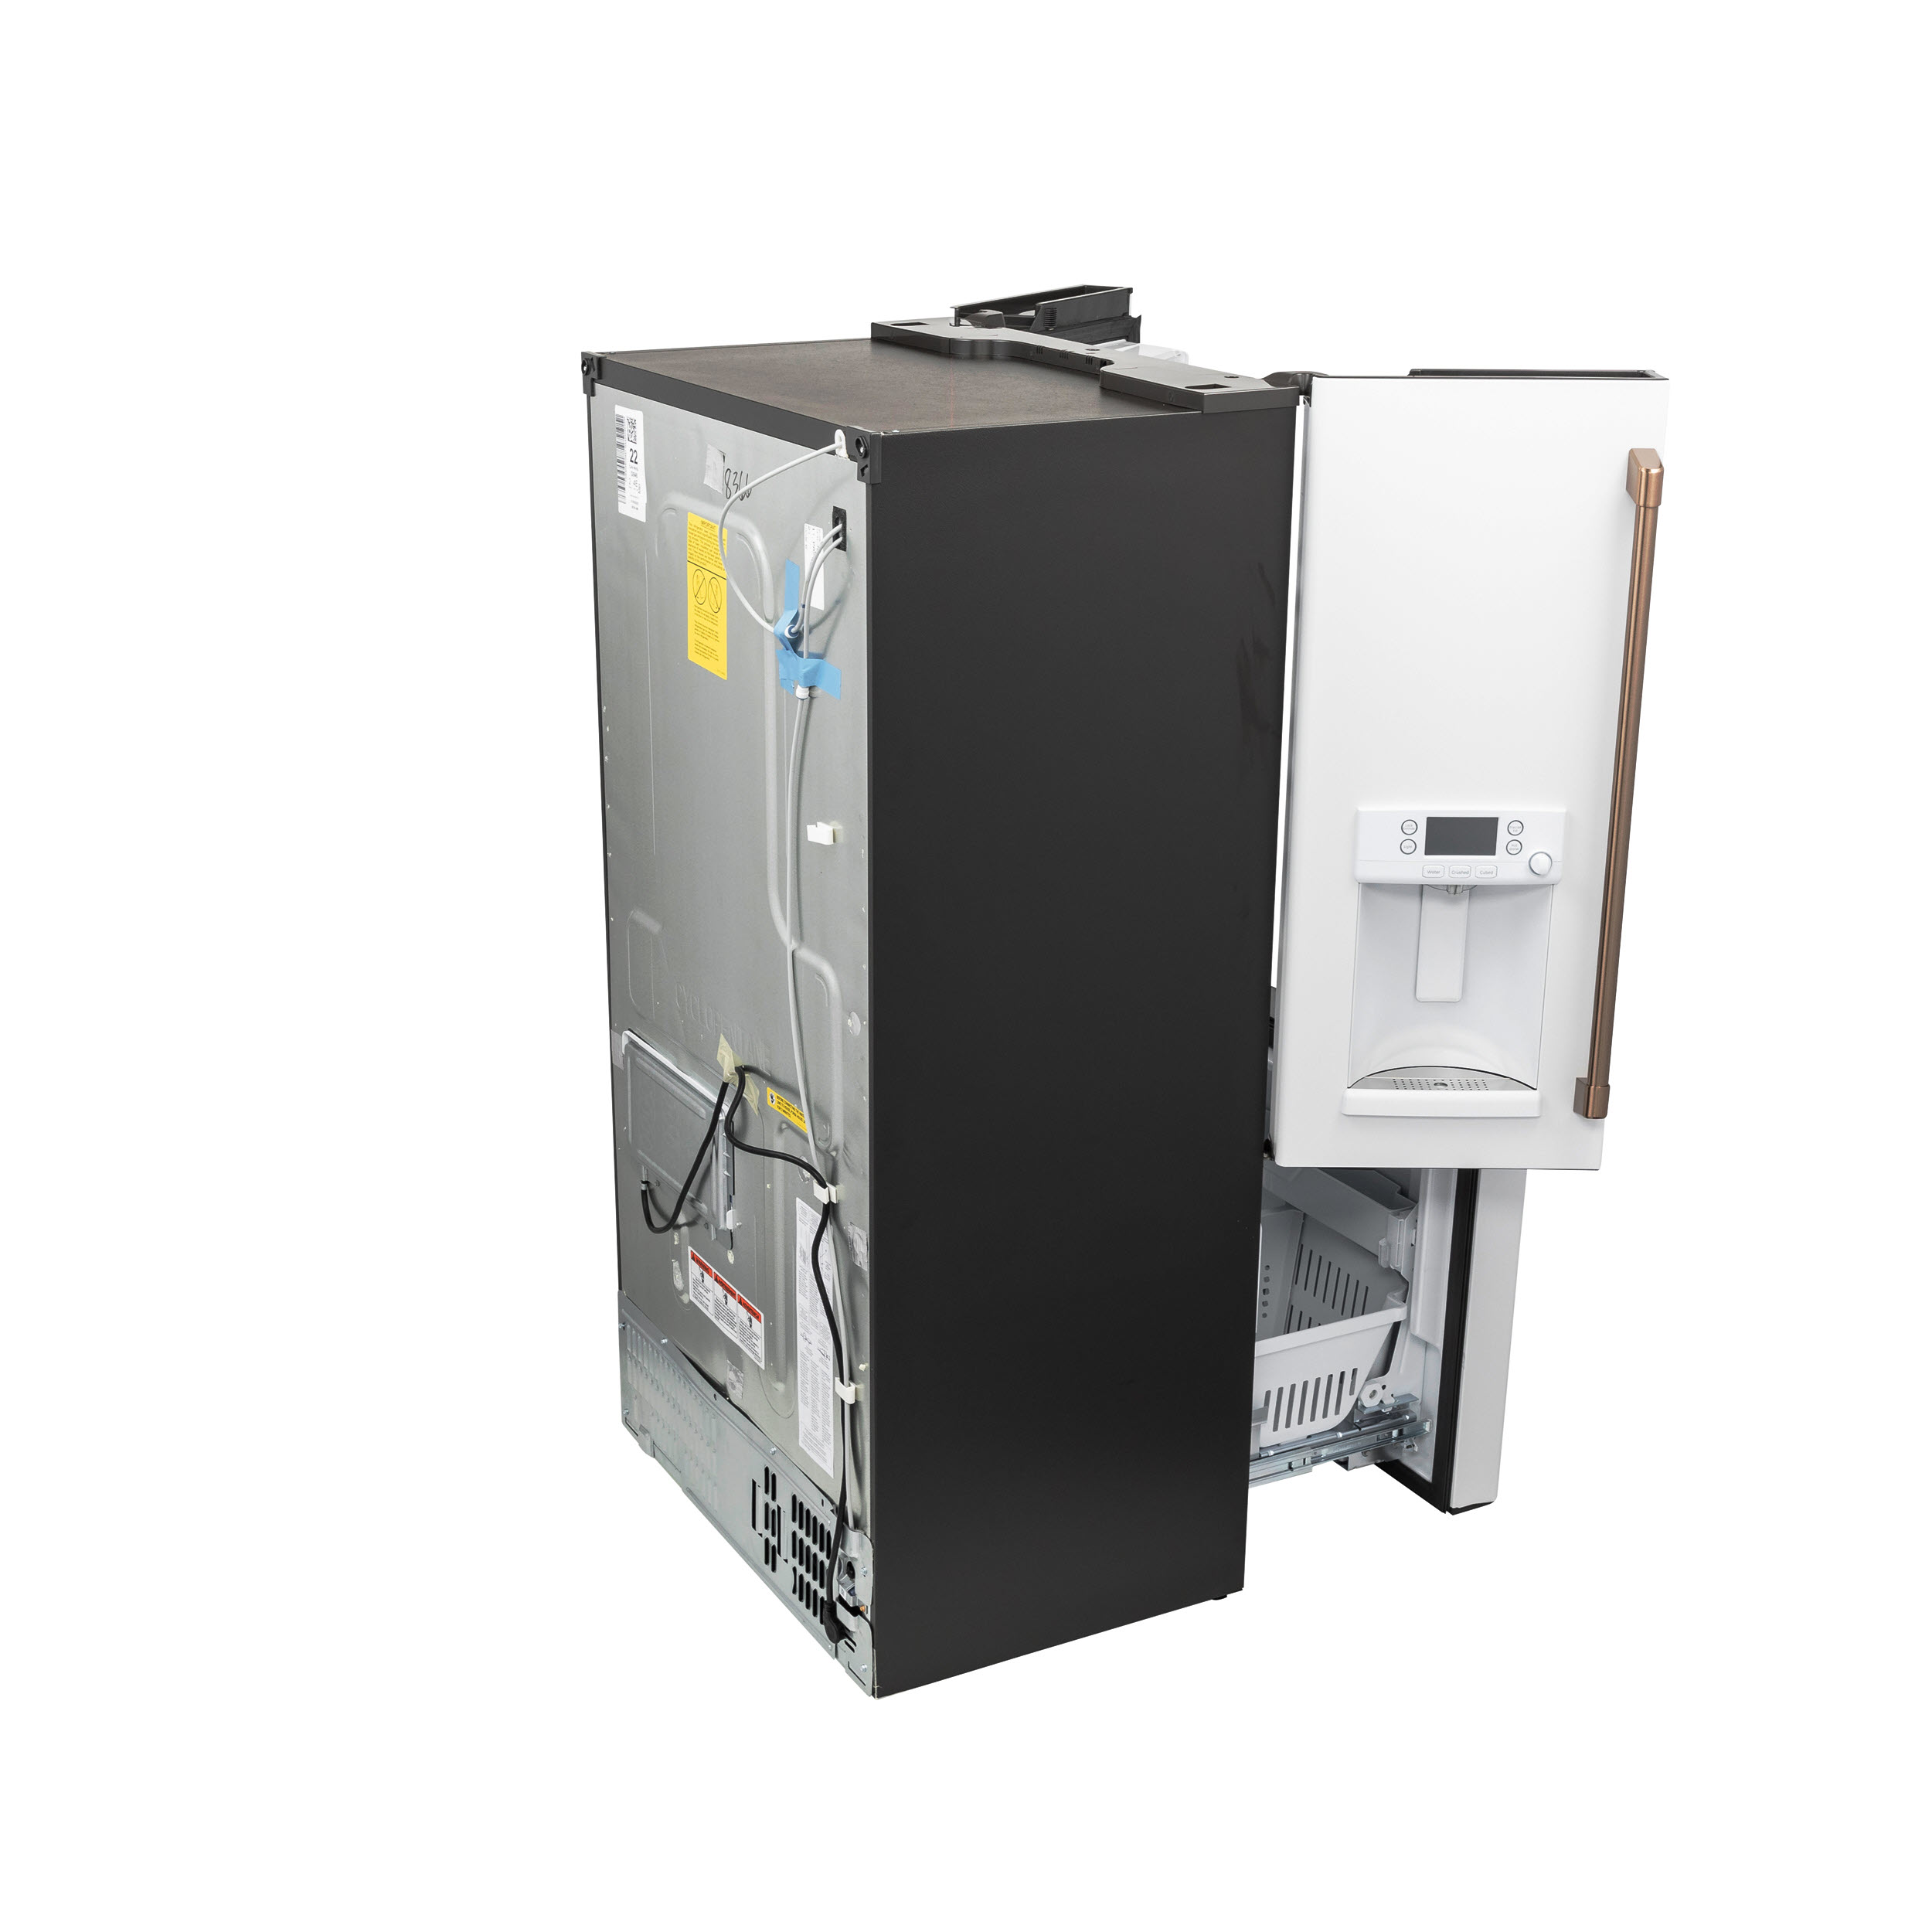 Model: CYE22TP4MW2 | Cafe Café™ ENERGY STAR® 22.1 Cu. Ft. Smart Counter-Depth French-Door Refrigerator with Hot Water Dispenser